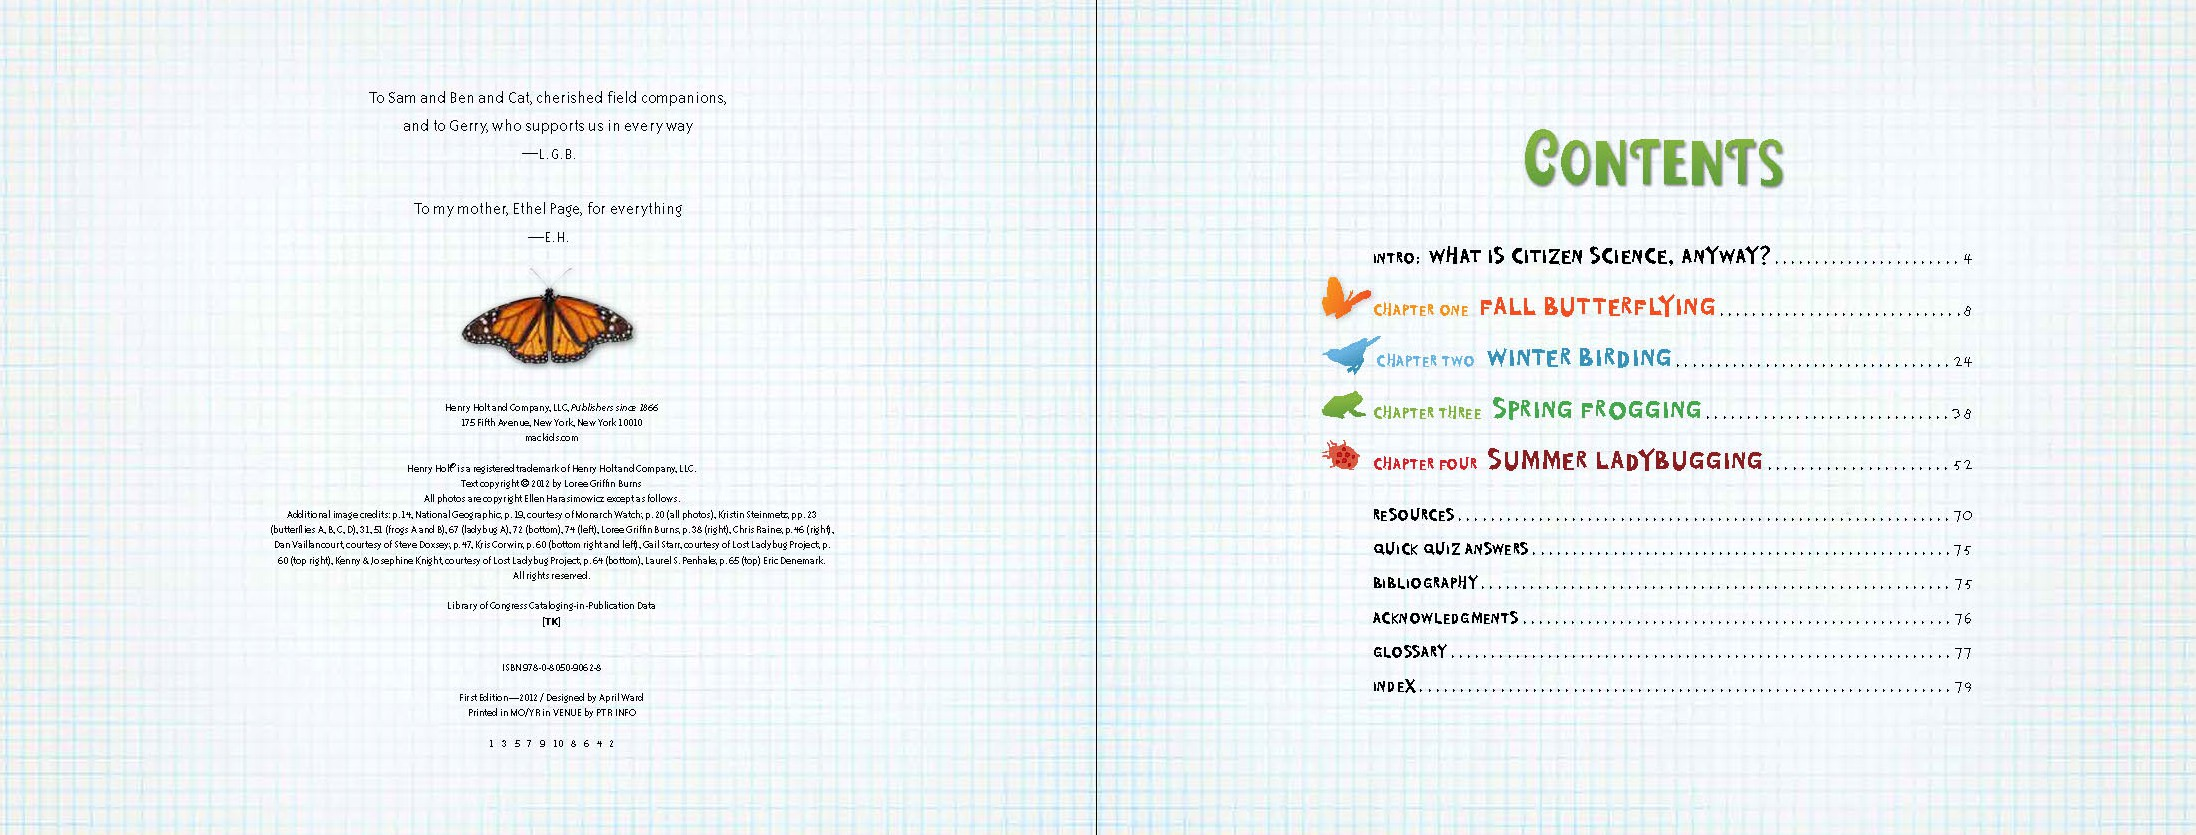 CitizenScience_Page_02